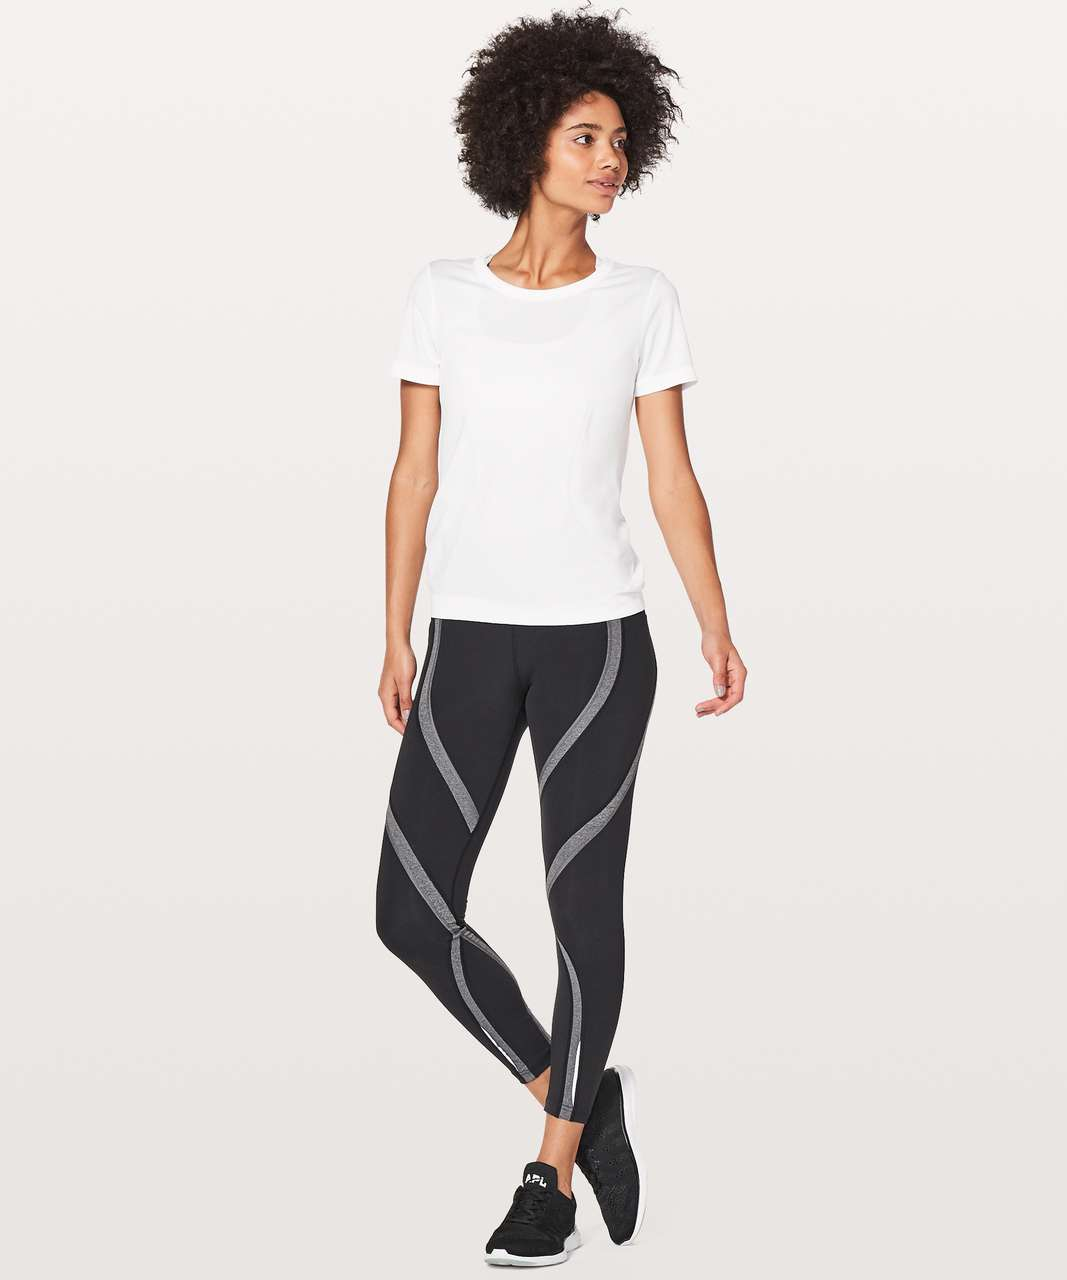 Lululemon Swiftly Tech Short Sleeve (Breeze) *Relaxed Fit - White / White (First Release)